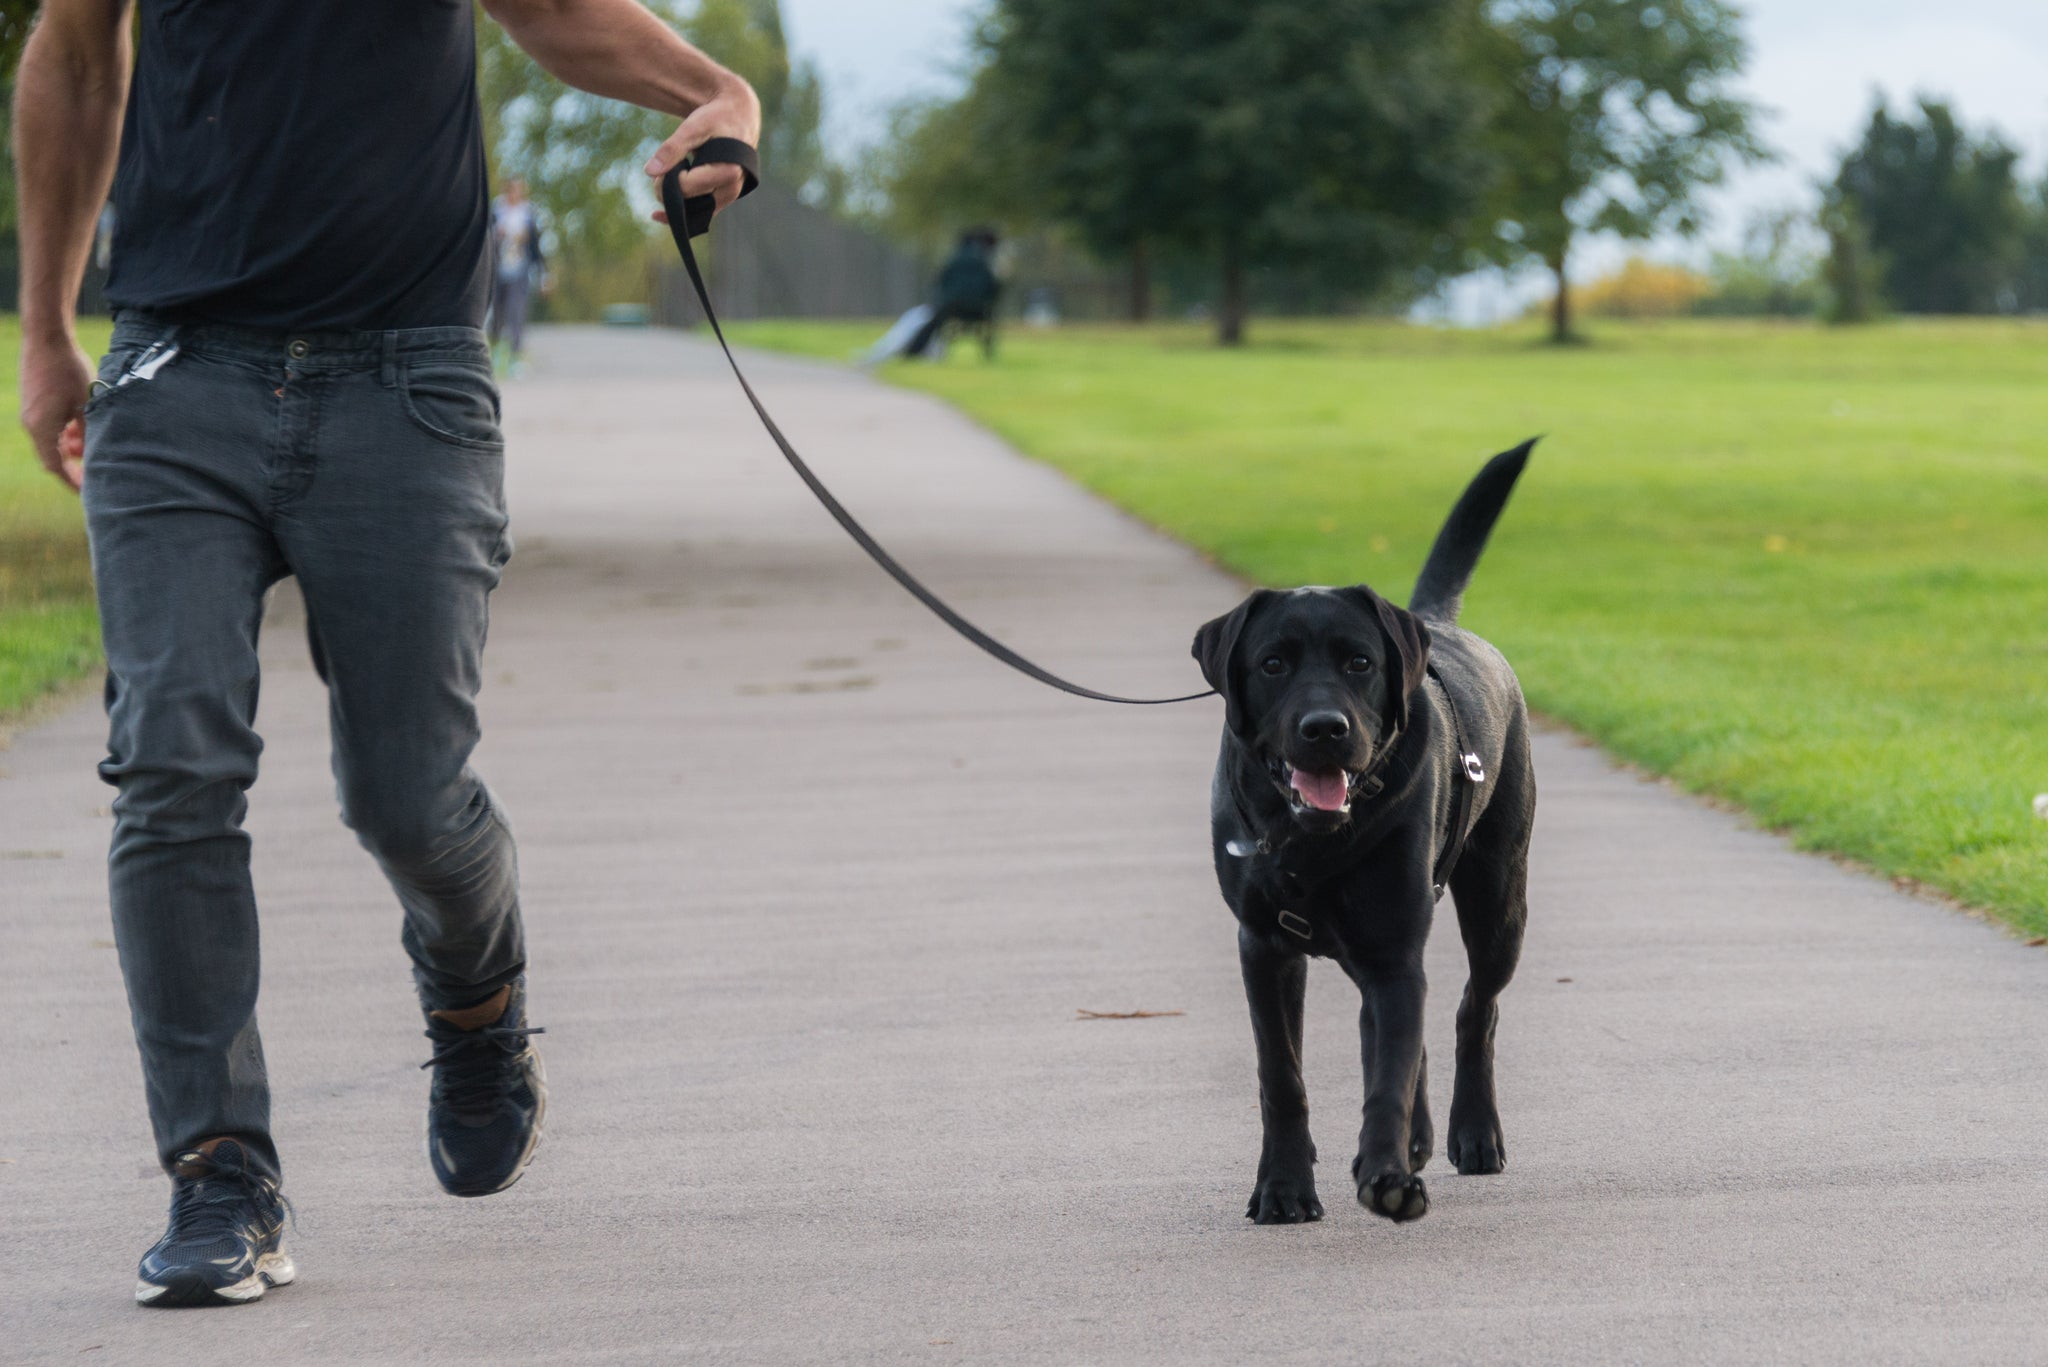 5 THINGS TO CONSIDER WHEN CHOOSING A HARNESS FOR YOUR DOG